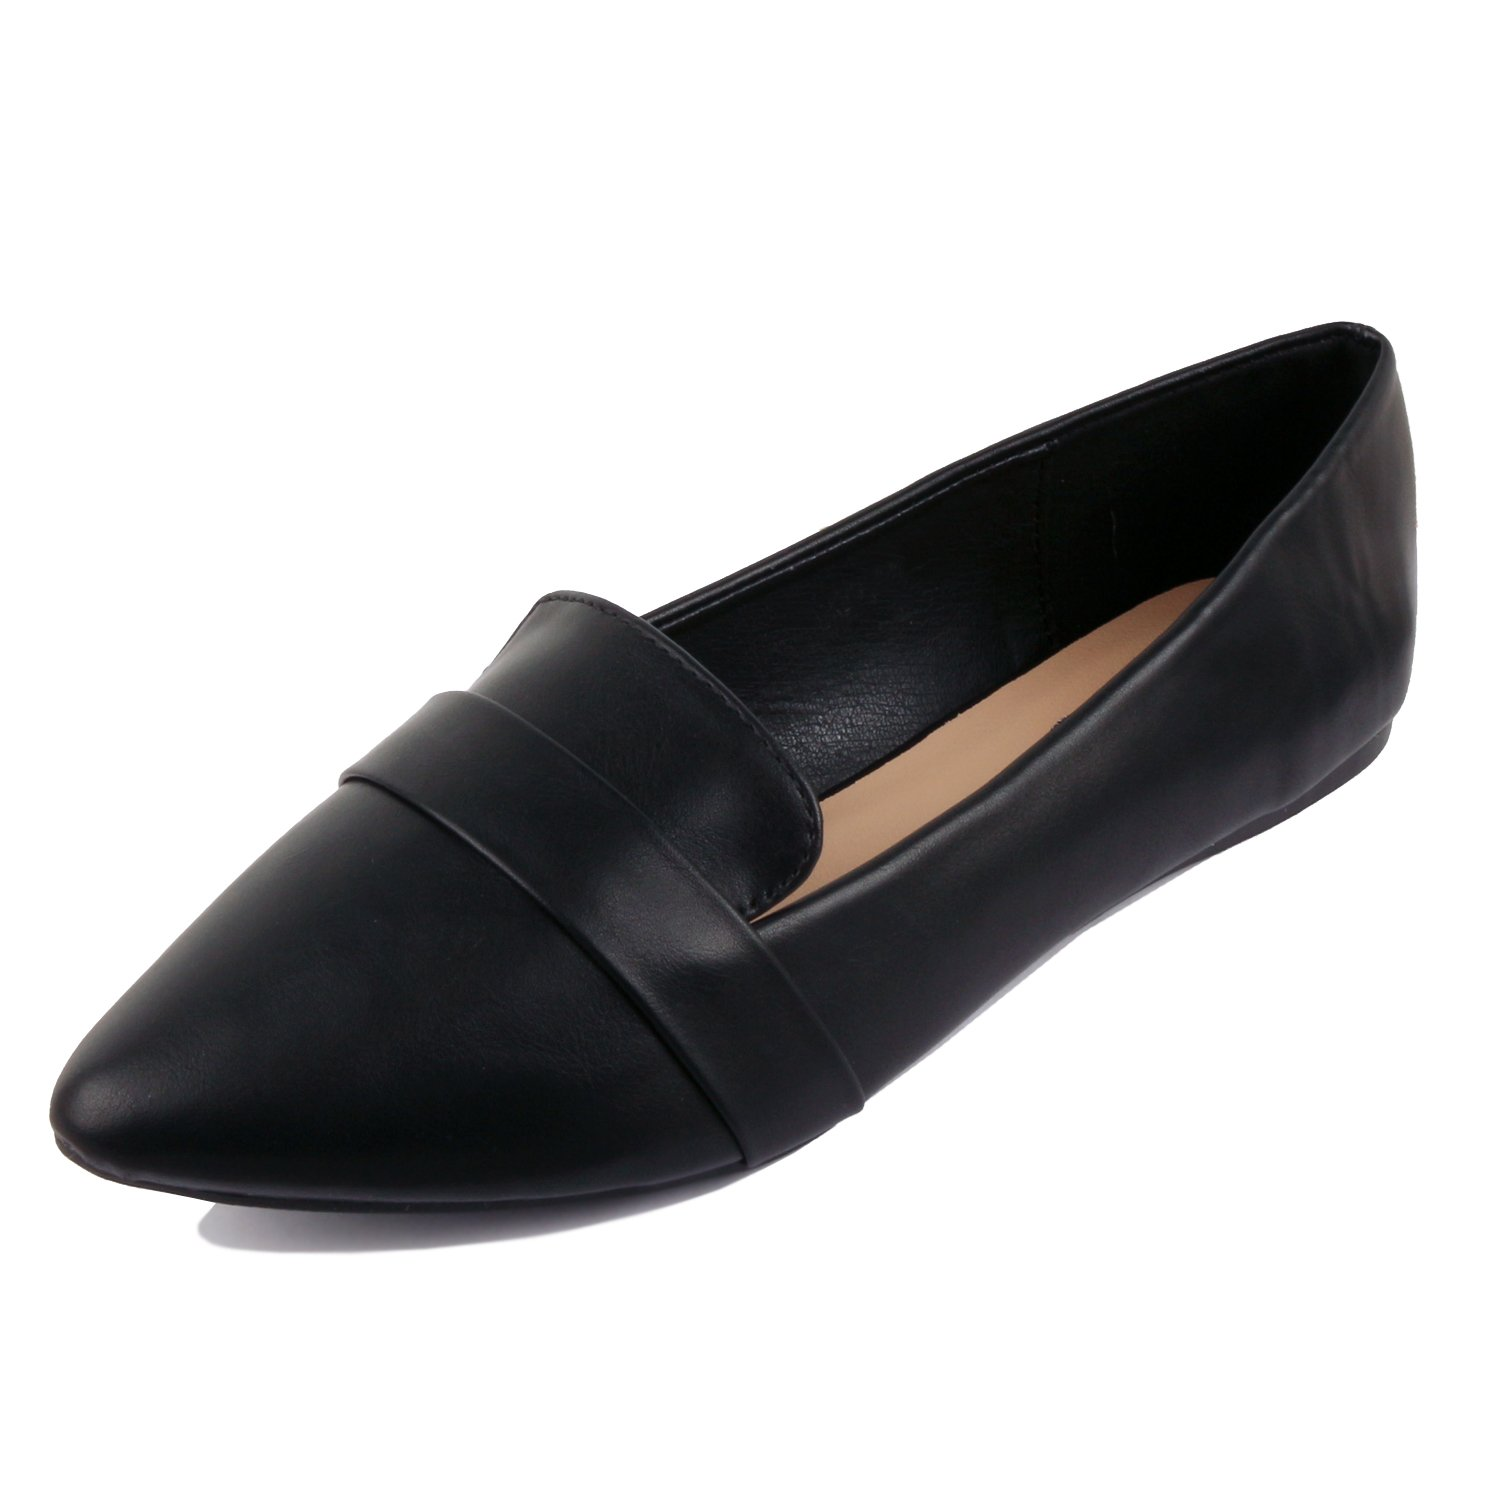 Guilty Heart - Women Soft Comfortable Pointy Toe Slip On Penny Loafer Flats, Black, 8.5 B(M) US